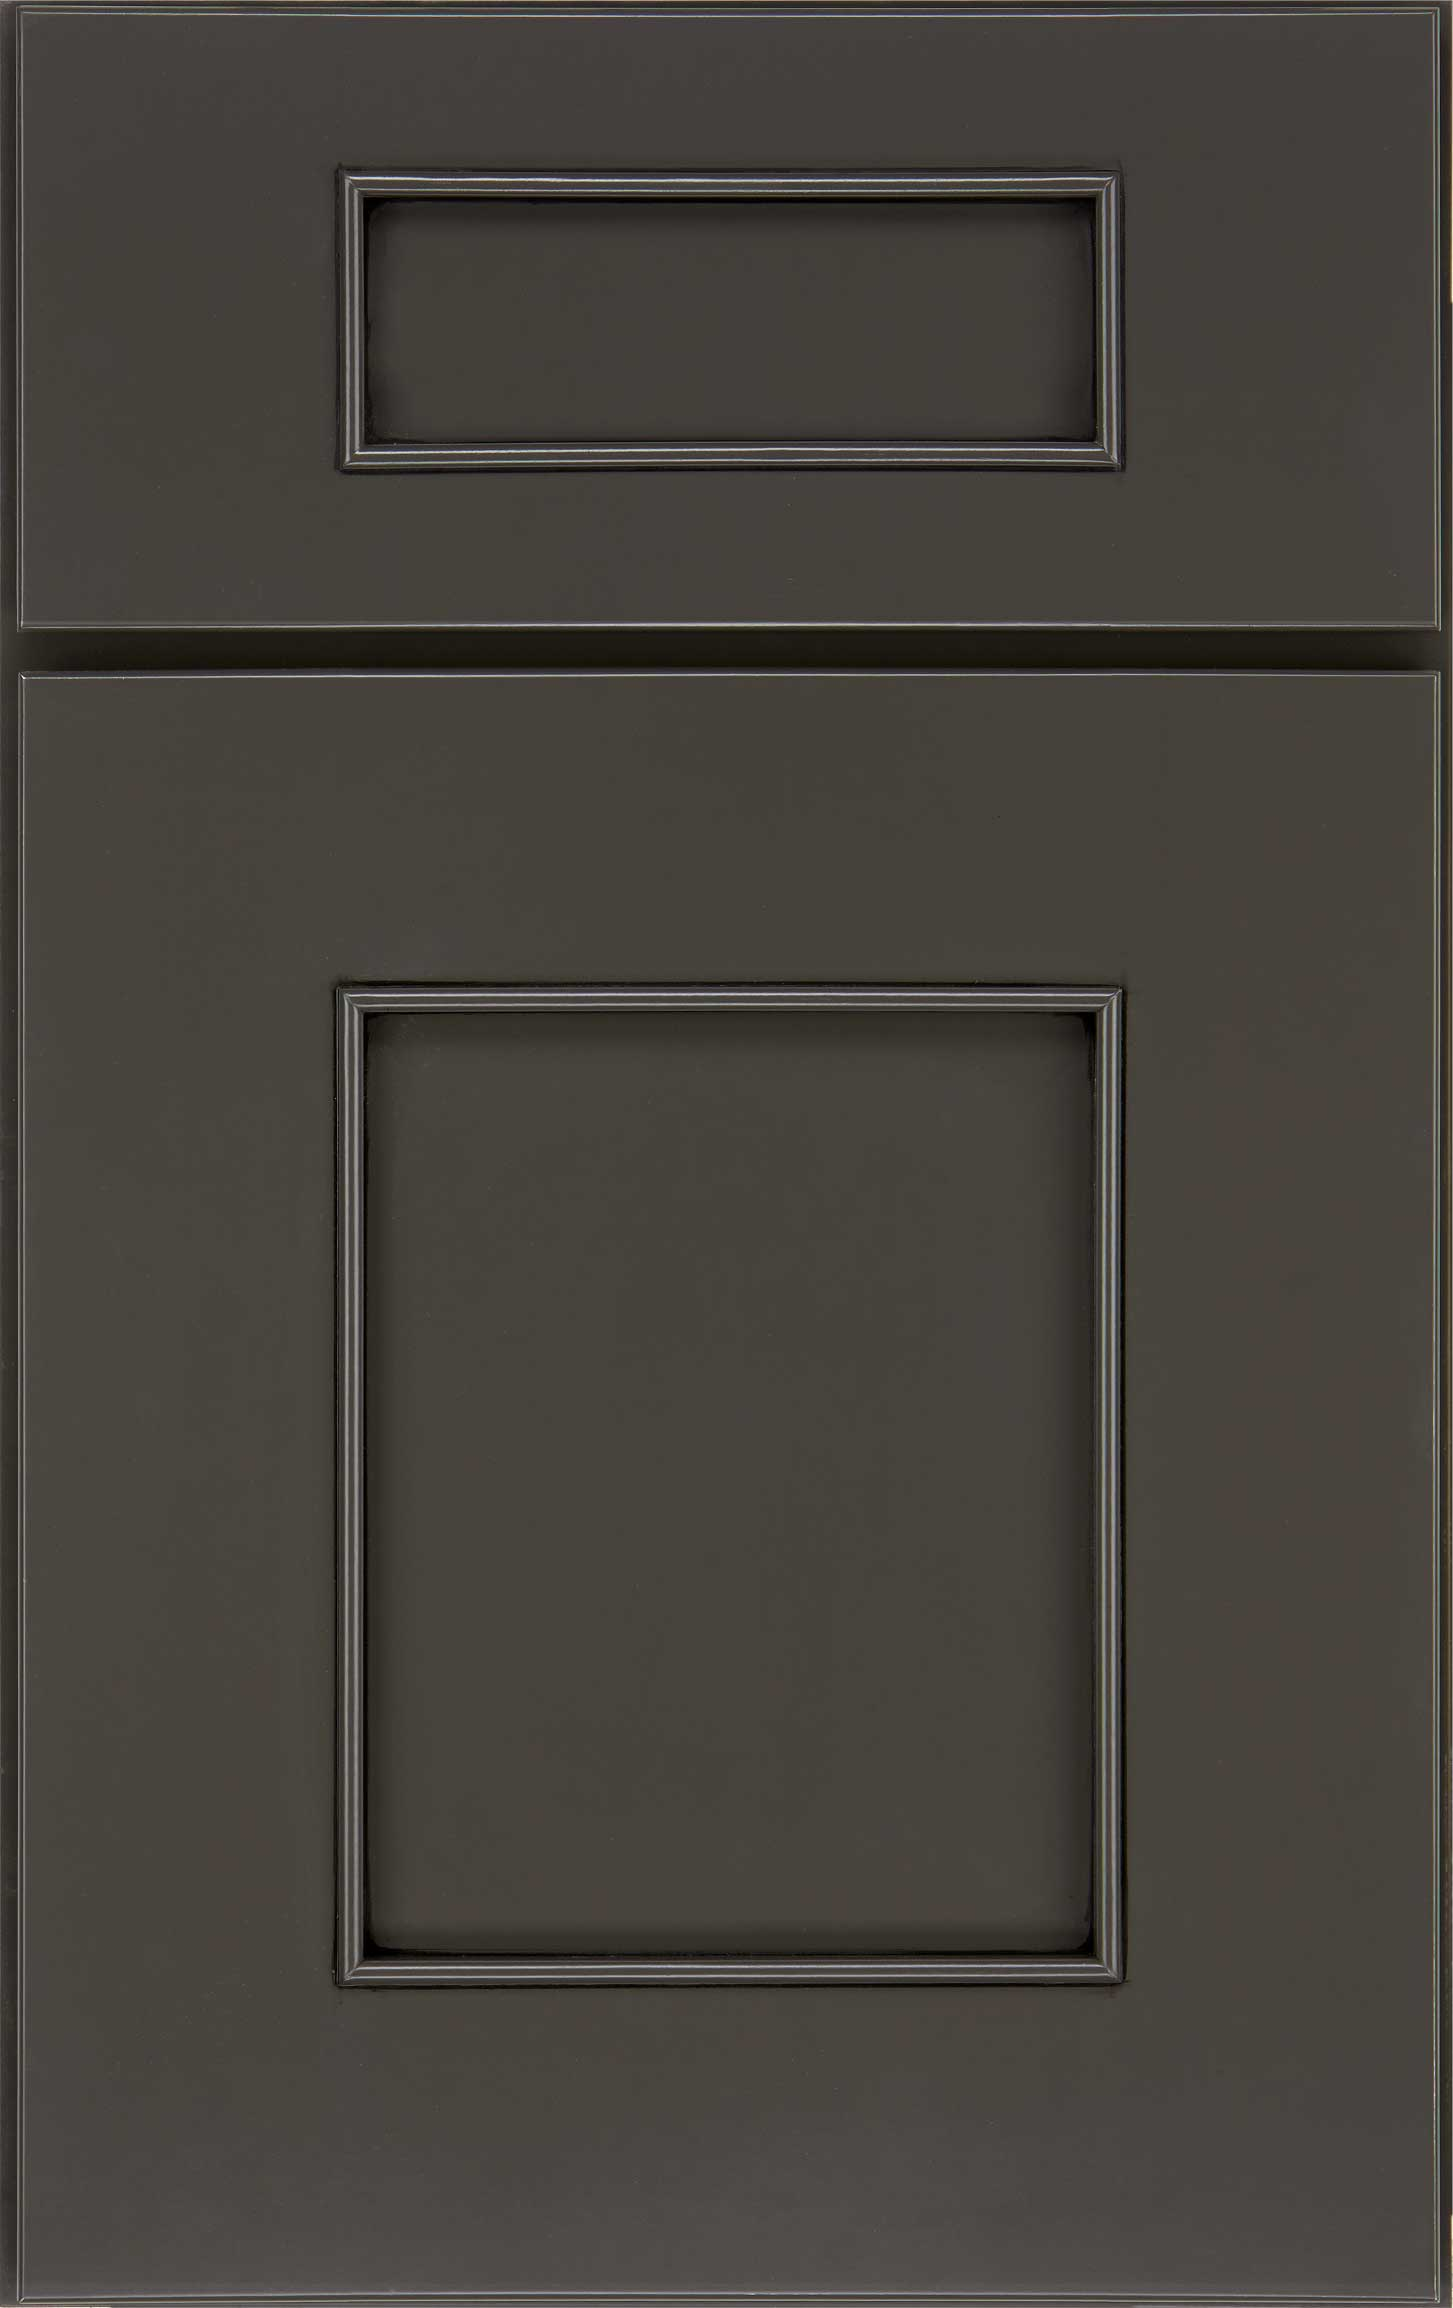 Loxley cabinet door in charcoal